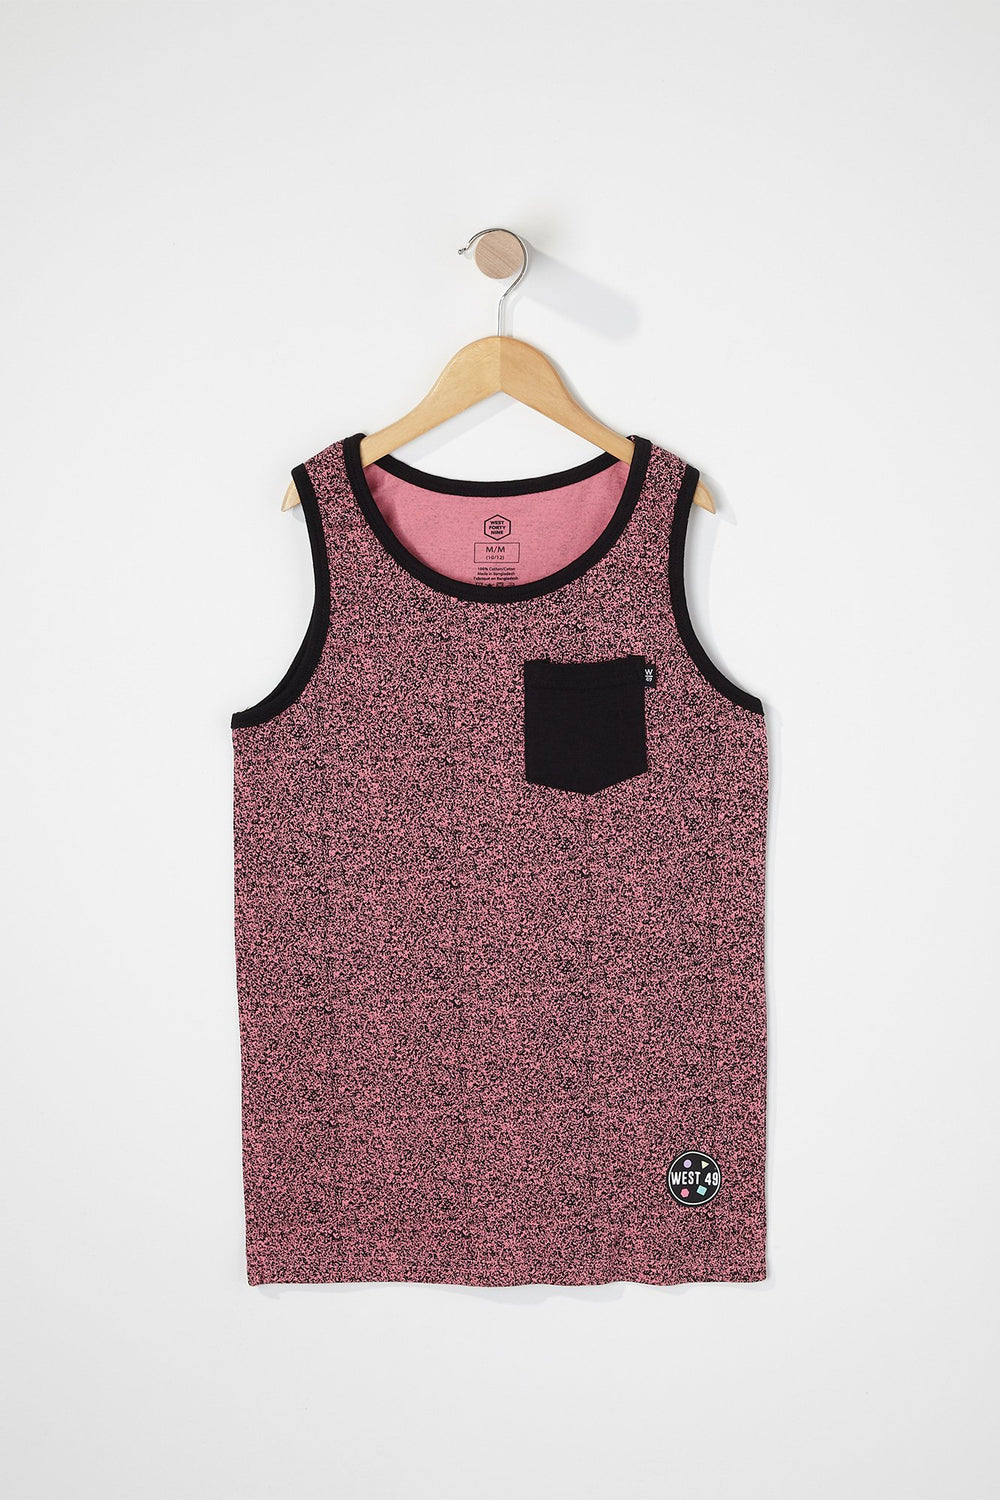 West49 Boys Cotton Speckle Pocket Tank Top Pink